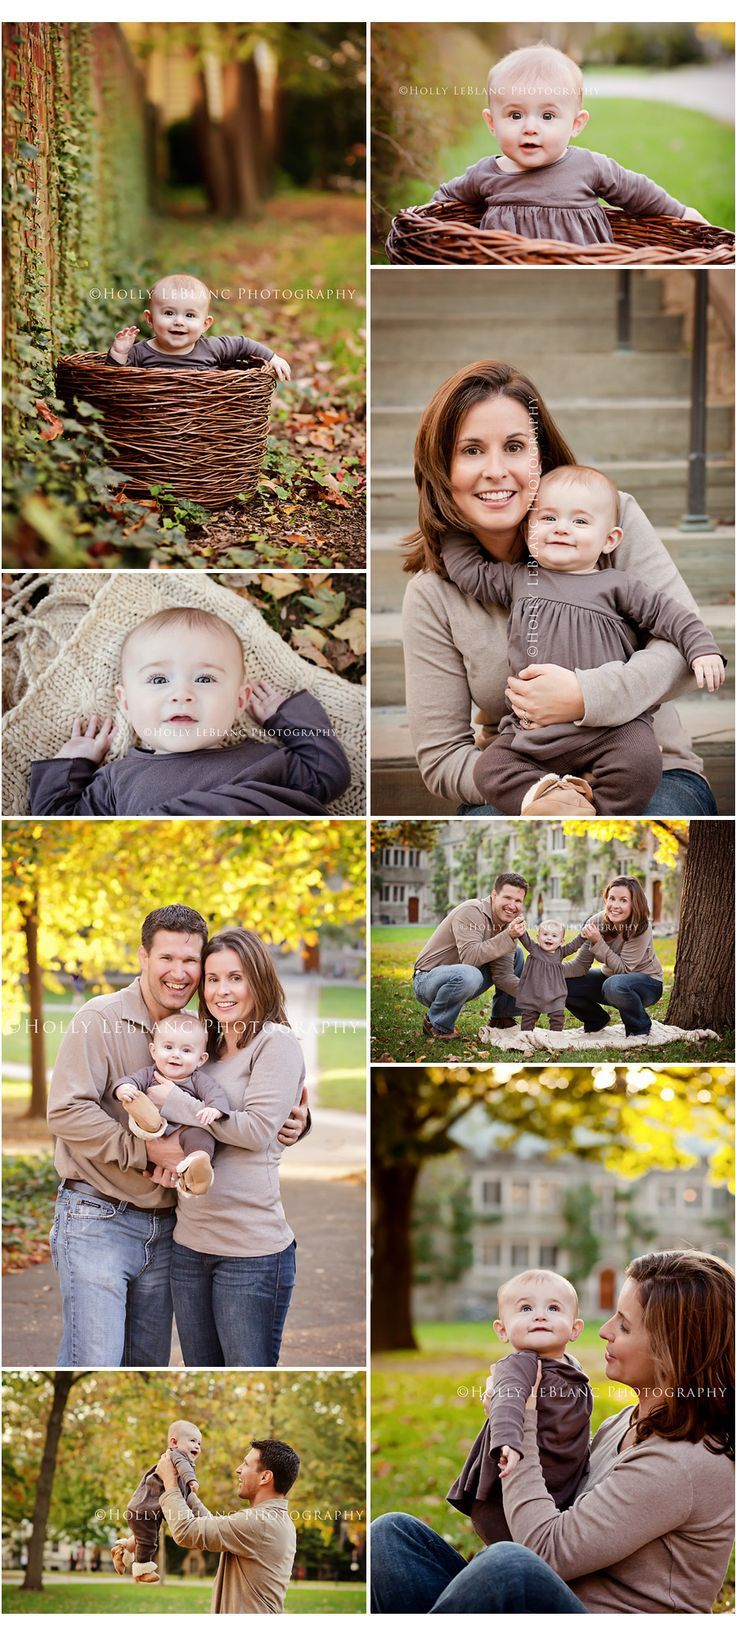 beautiful session with baby and parents